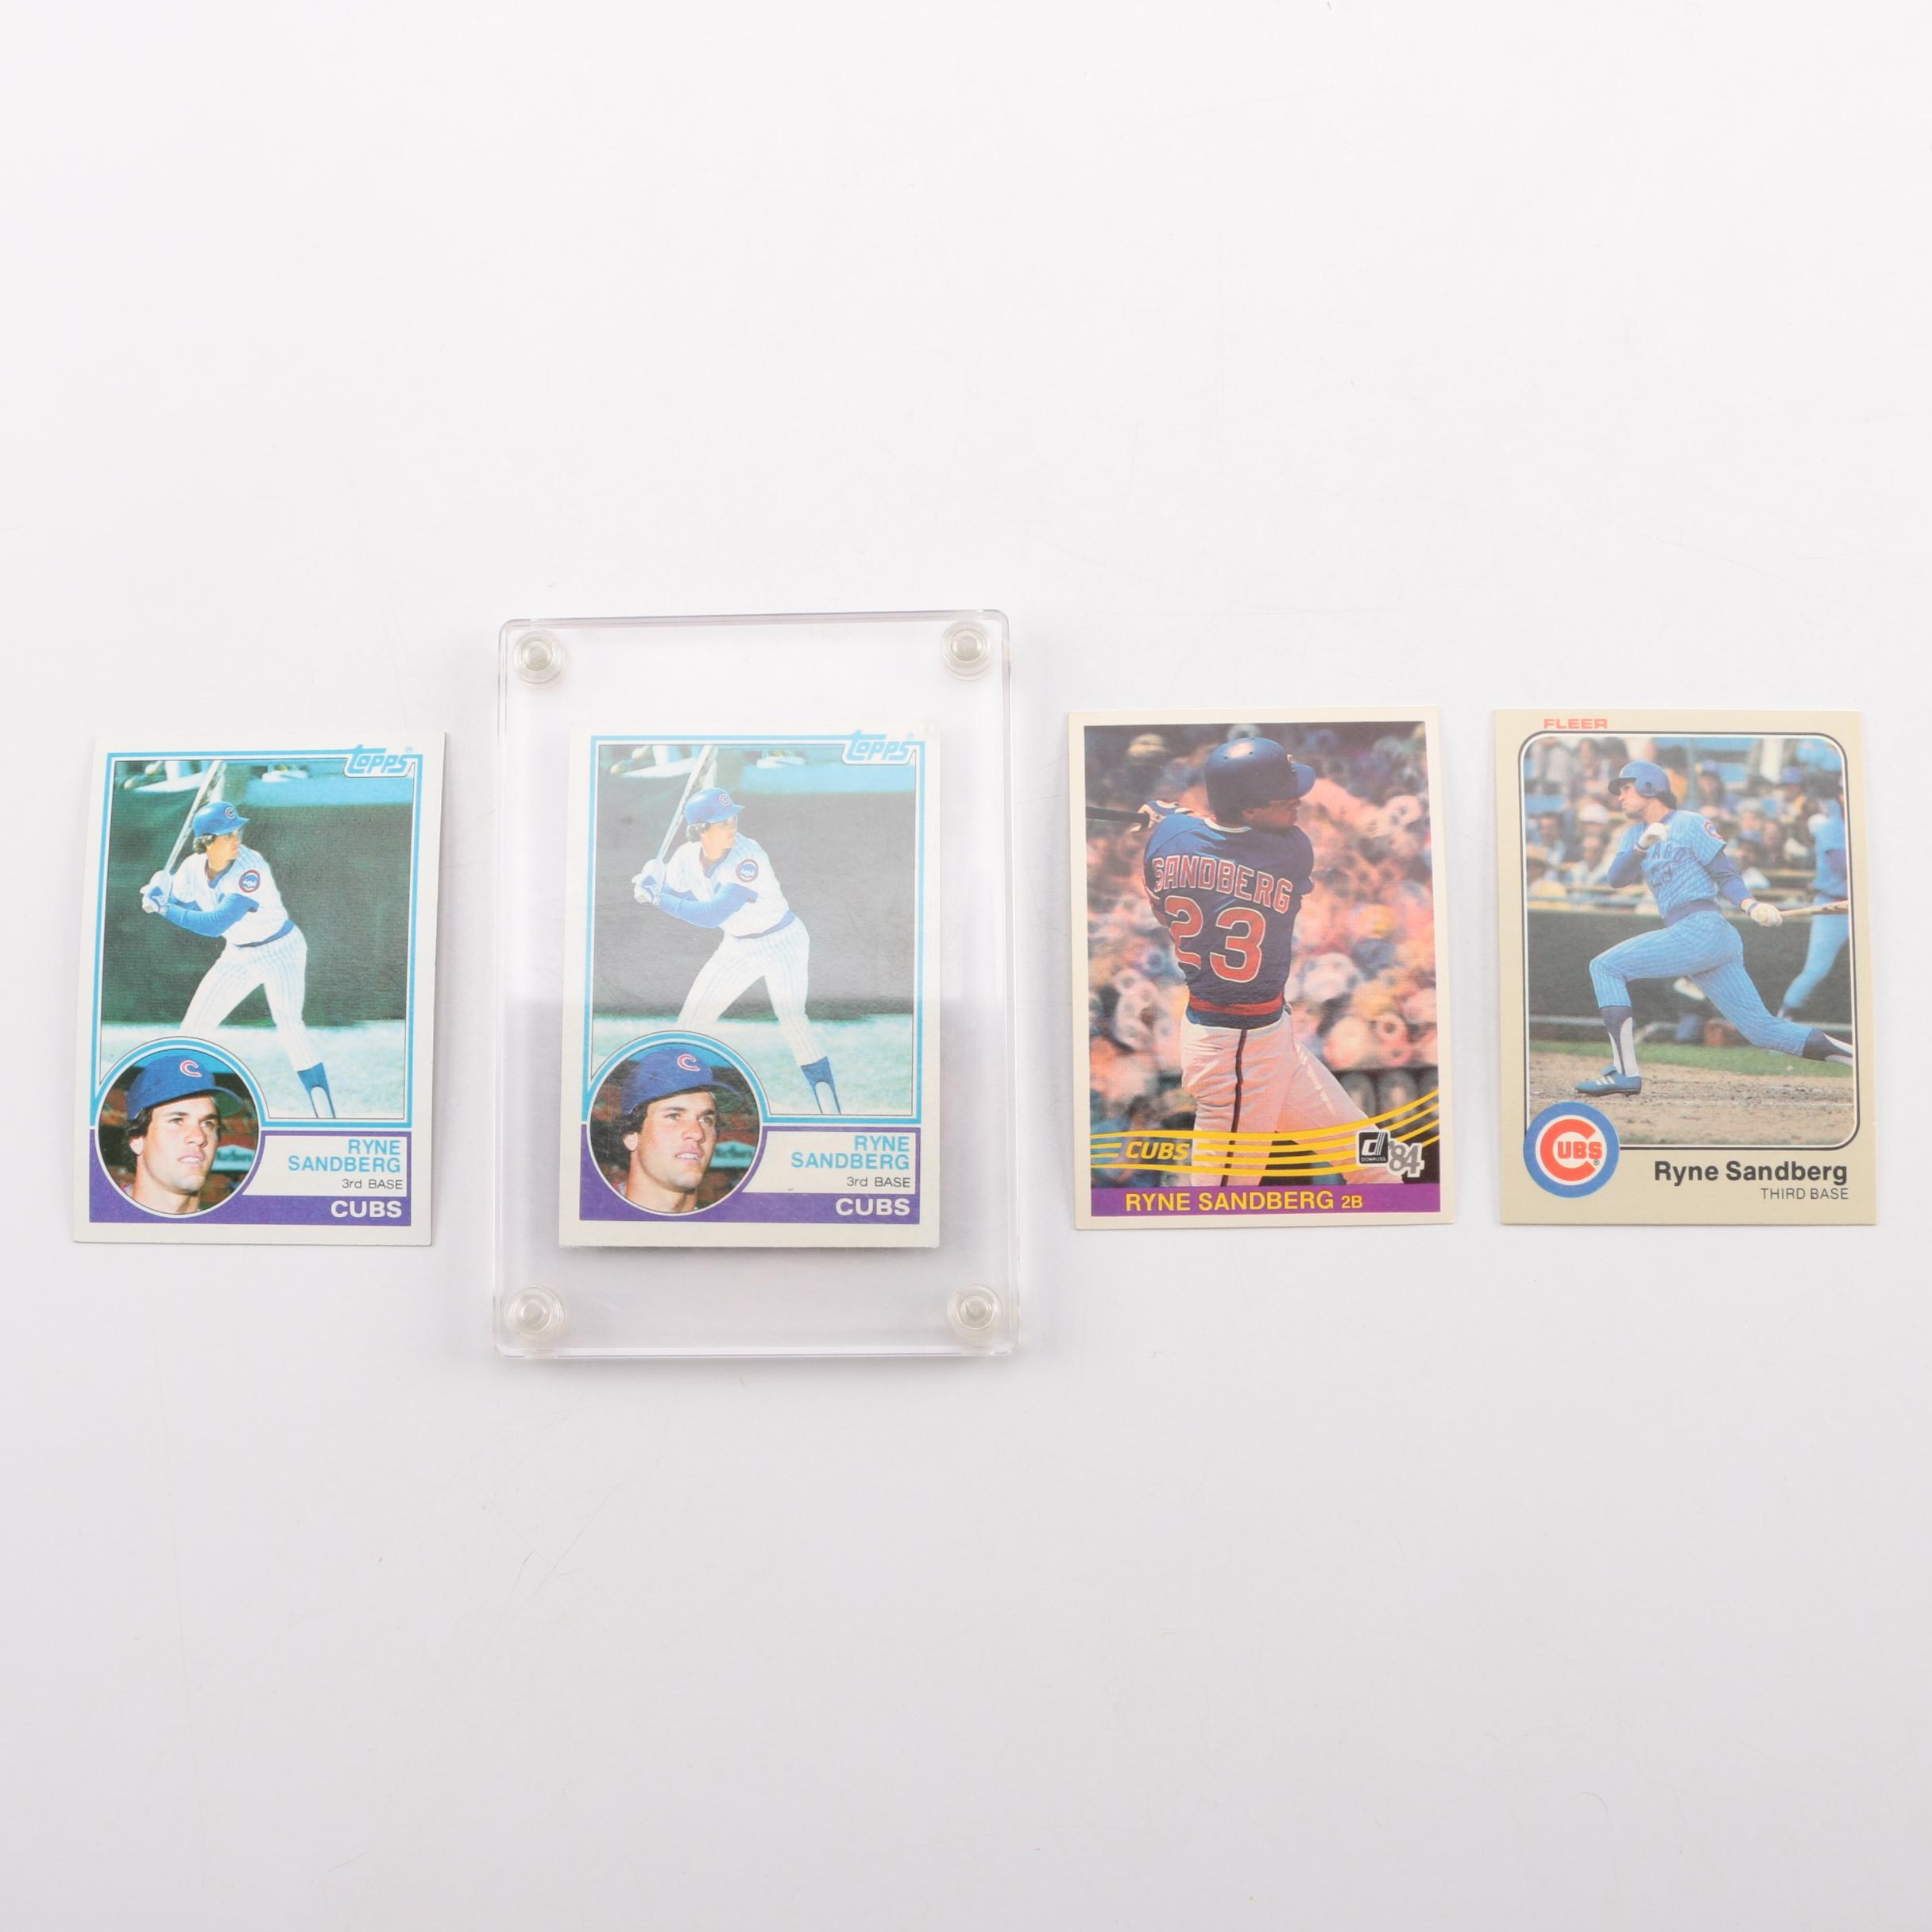 Collection of Ryne Sandberg Baseball Trading Cards